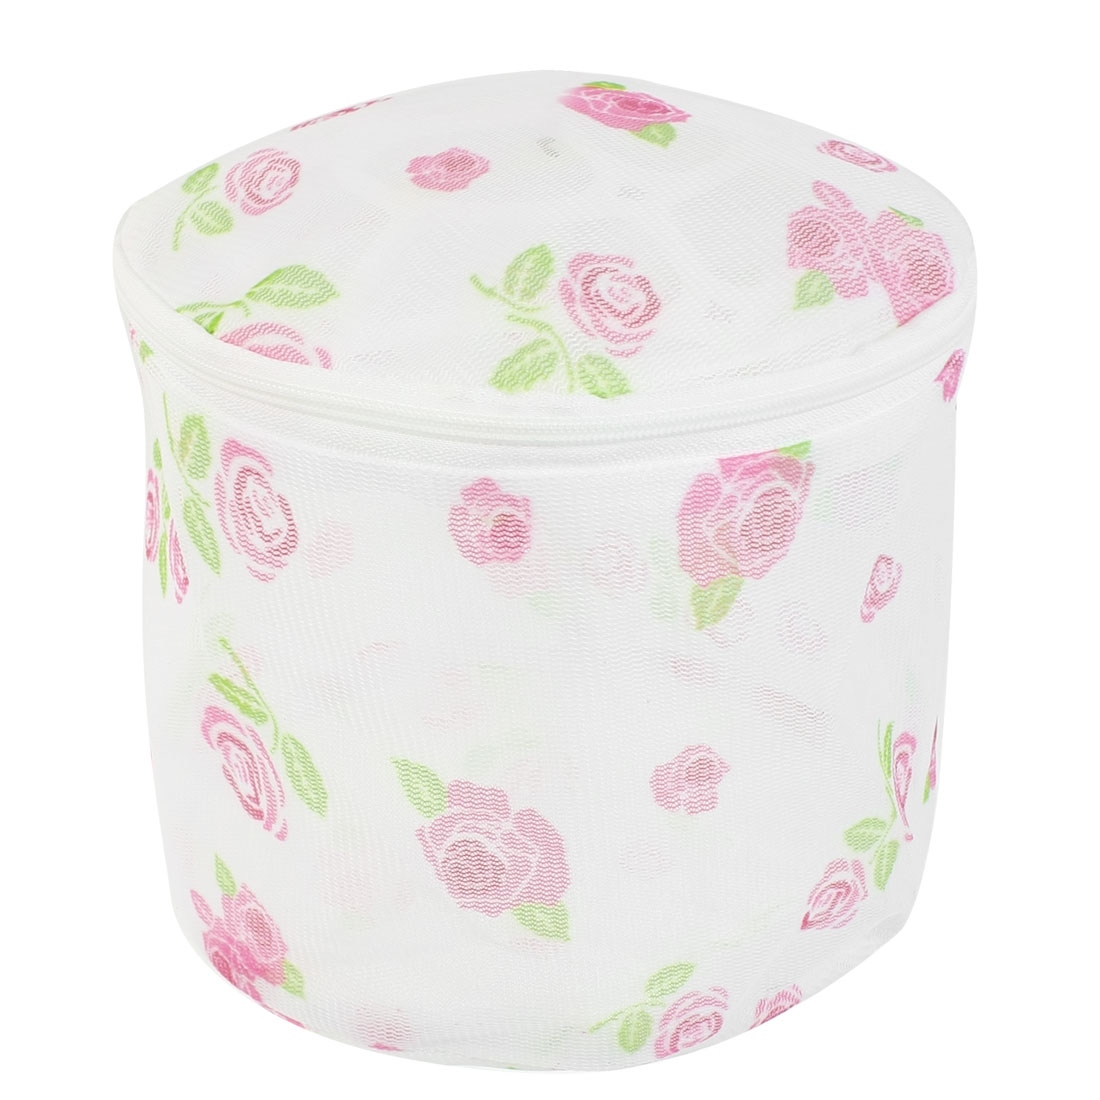 Rose Printed Zipper Mesh Nylon Laundry Underwear Washing Bag